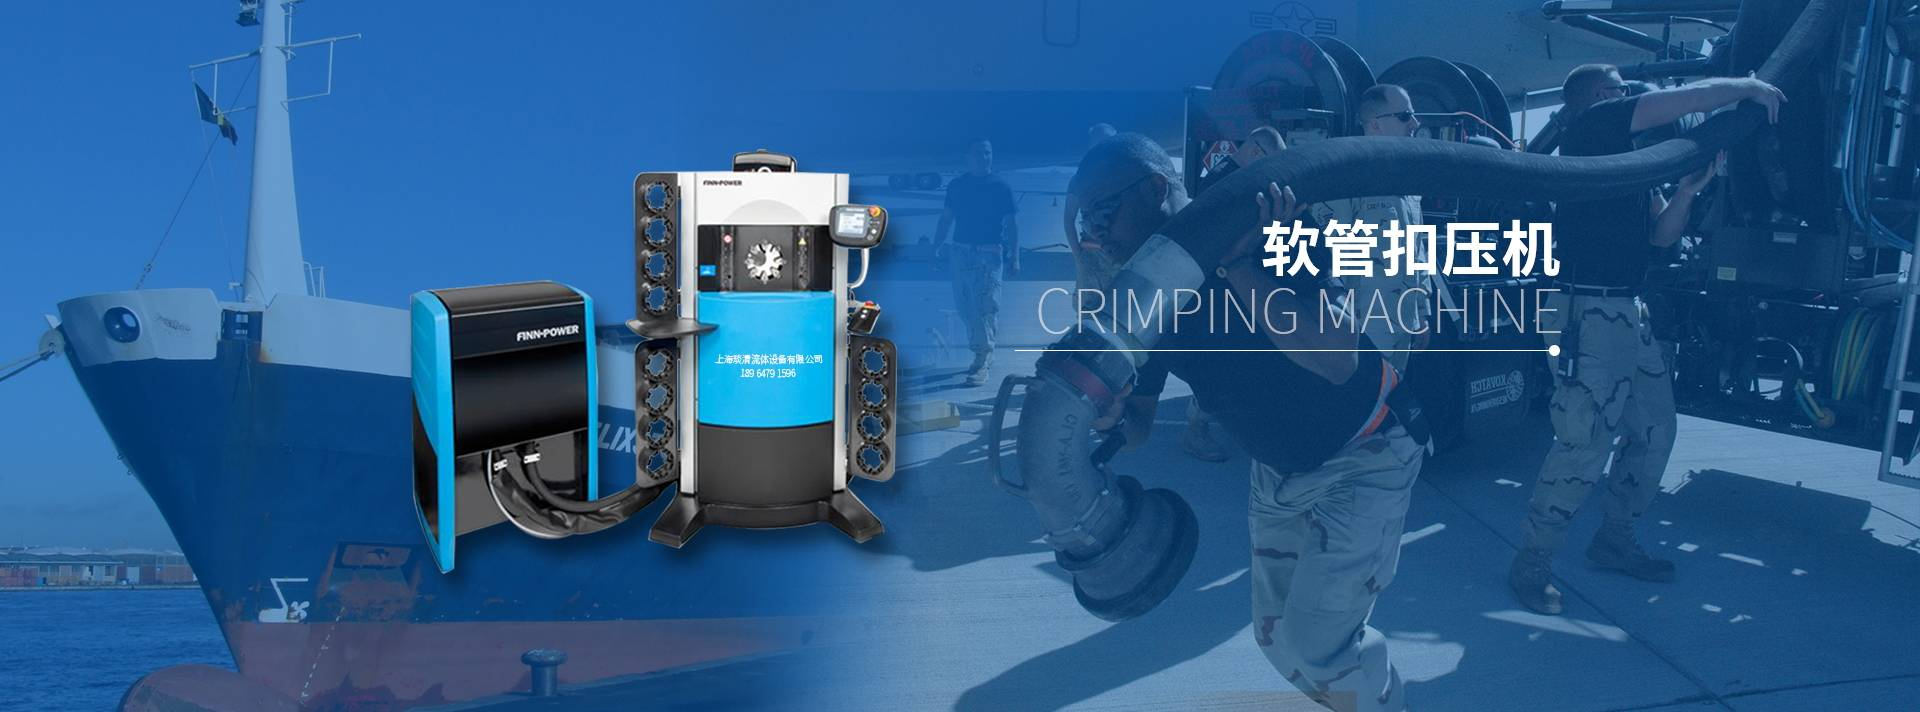 Crimping machine service